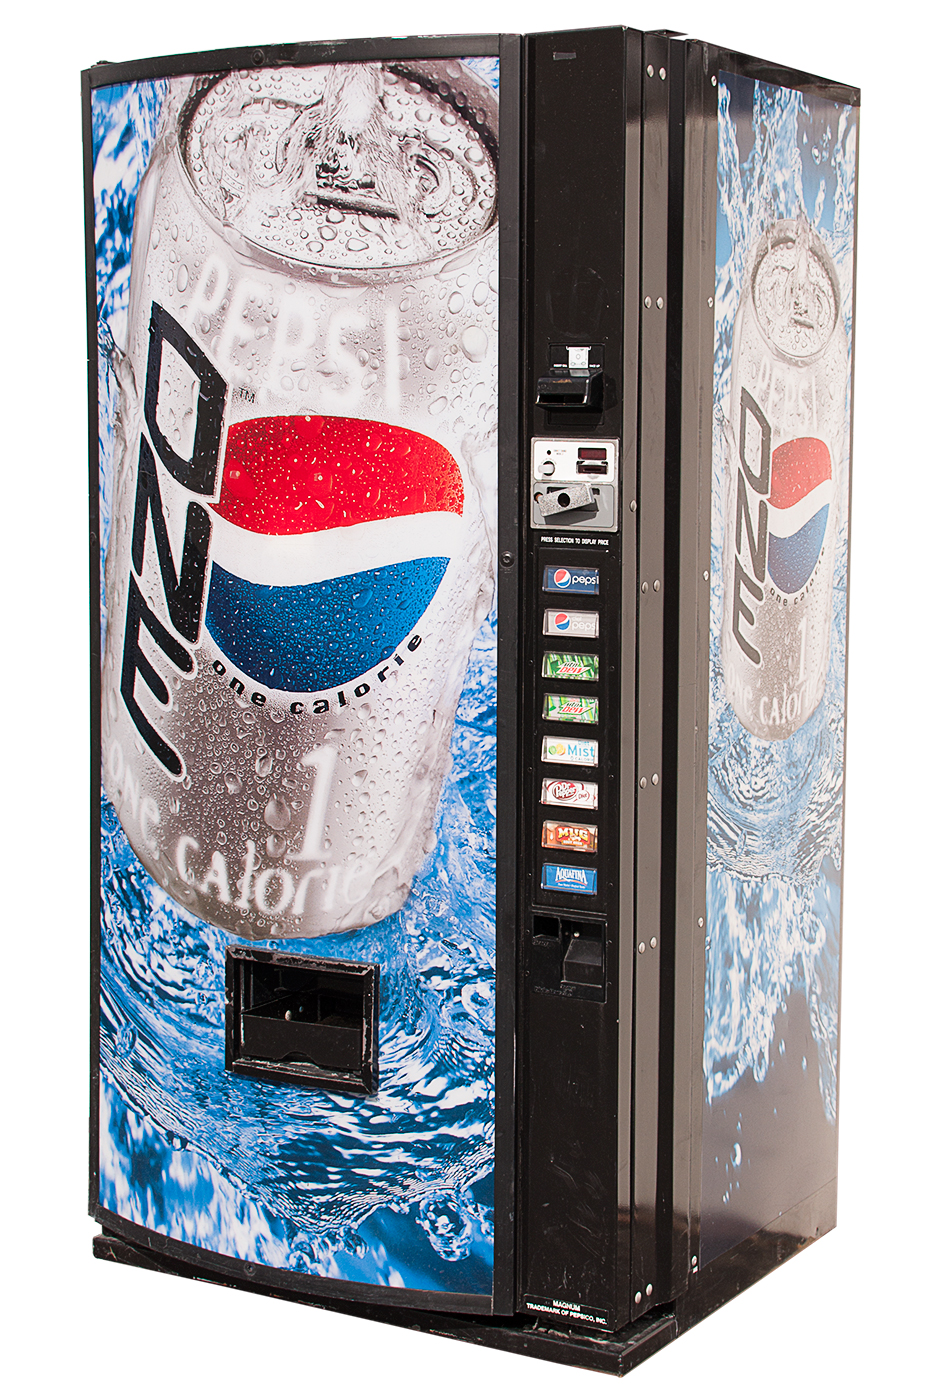 Pepsi One Graphic Multi-price Beverage Vending Machine